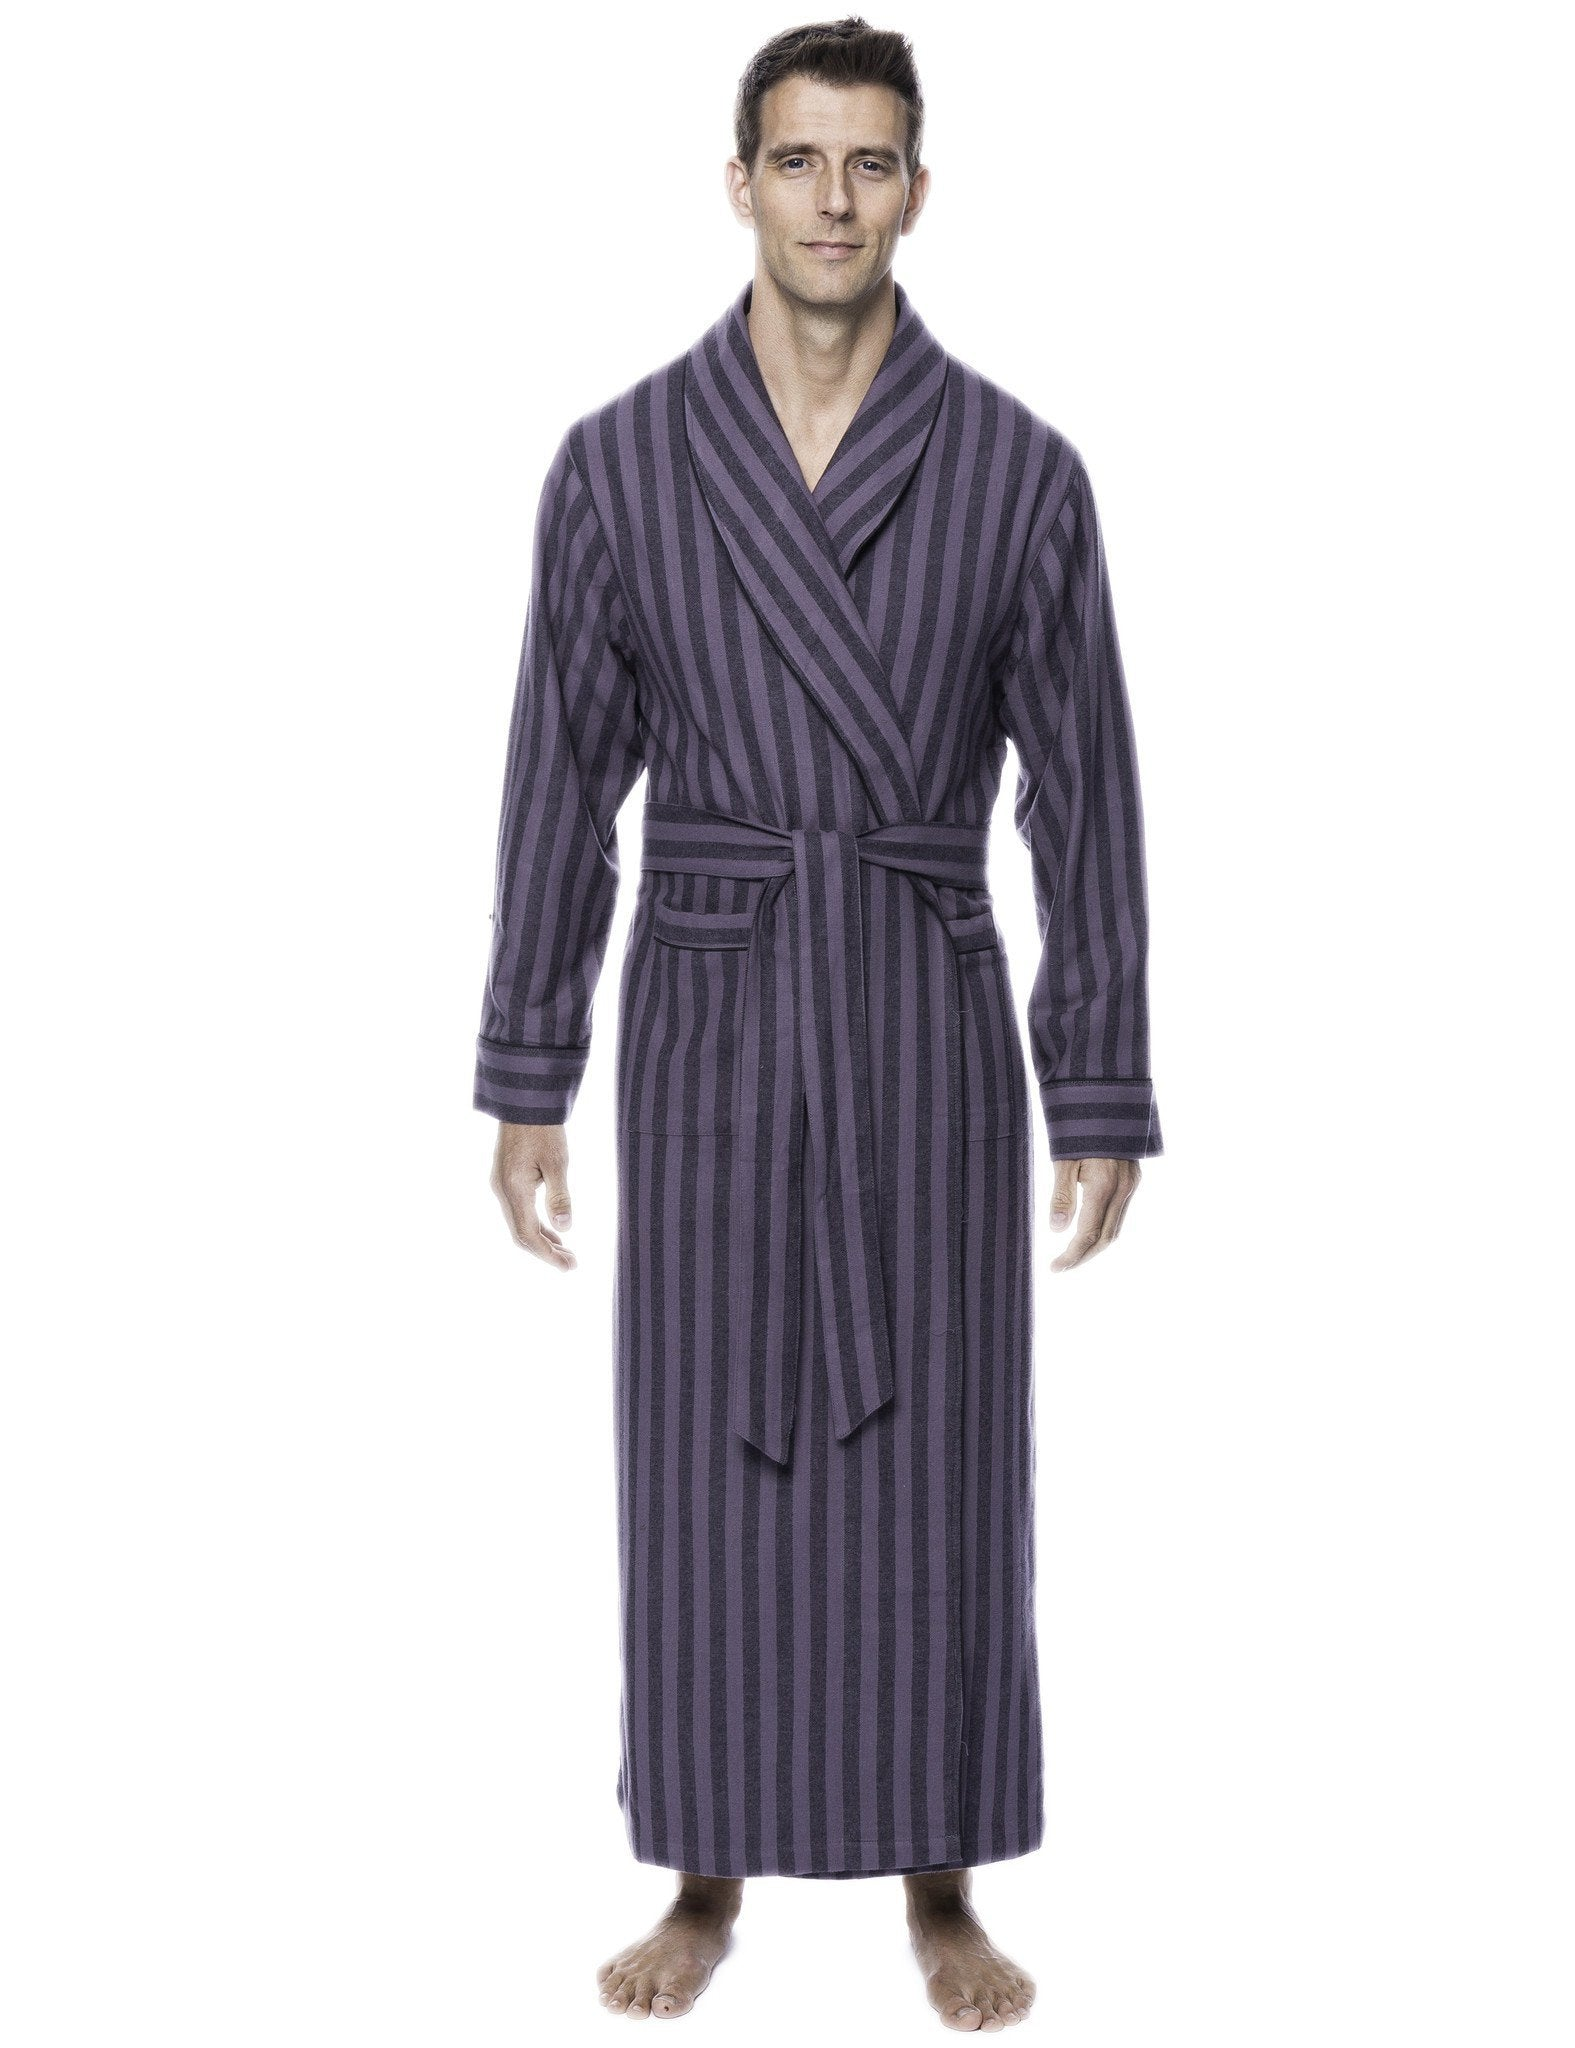 Box Packaged Men's Premium 100% Cotton Flannel Long Robe - Stripes Black/Grey